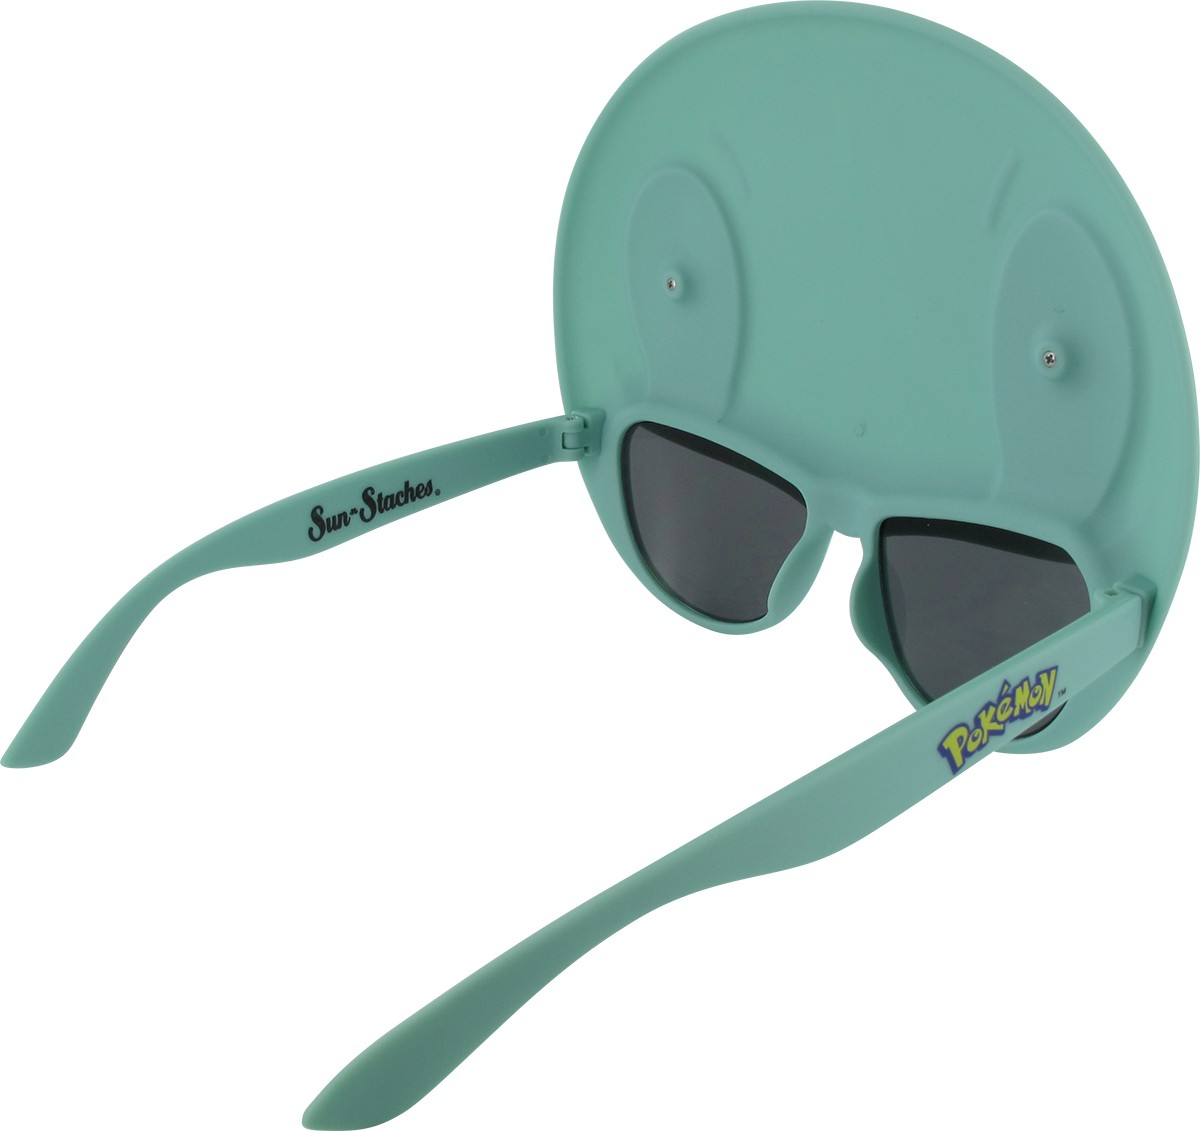 Squirtle With Sunglasses 86